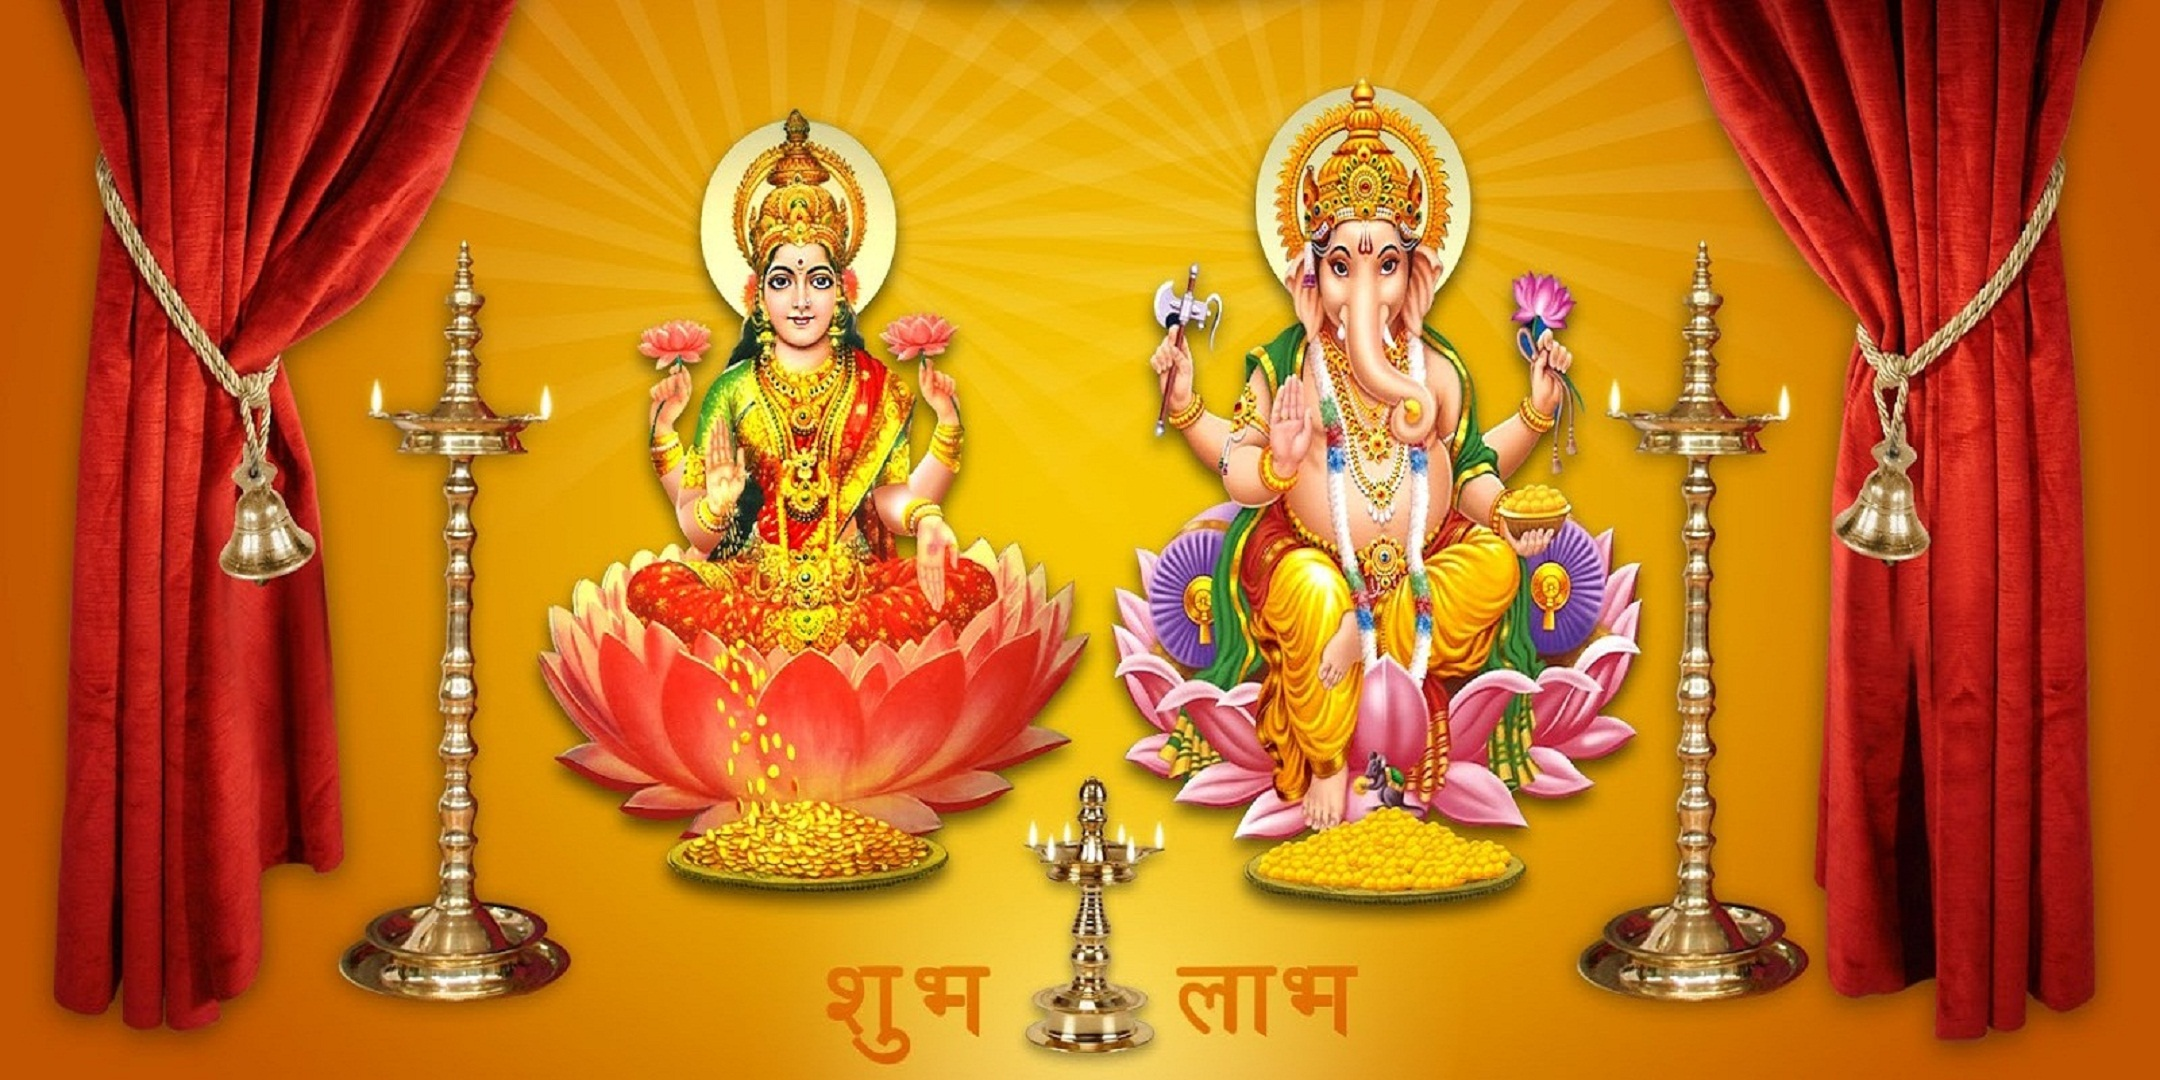 Download Shree Ganesh Pics Wallpapers Gallery | 2160 x 1080 jpeg 619kB